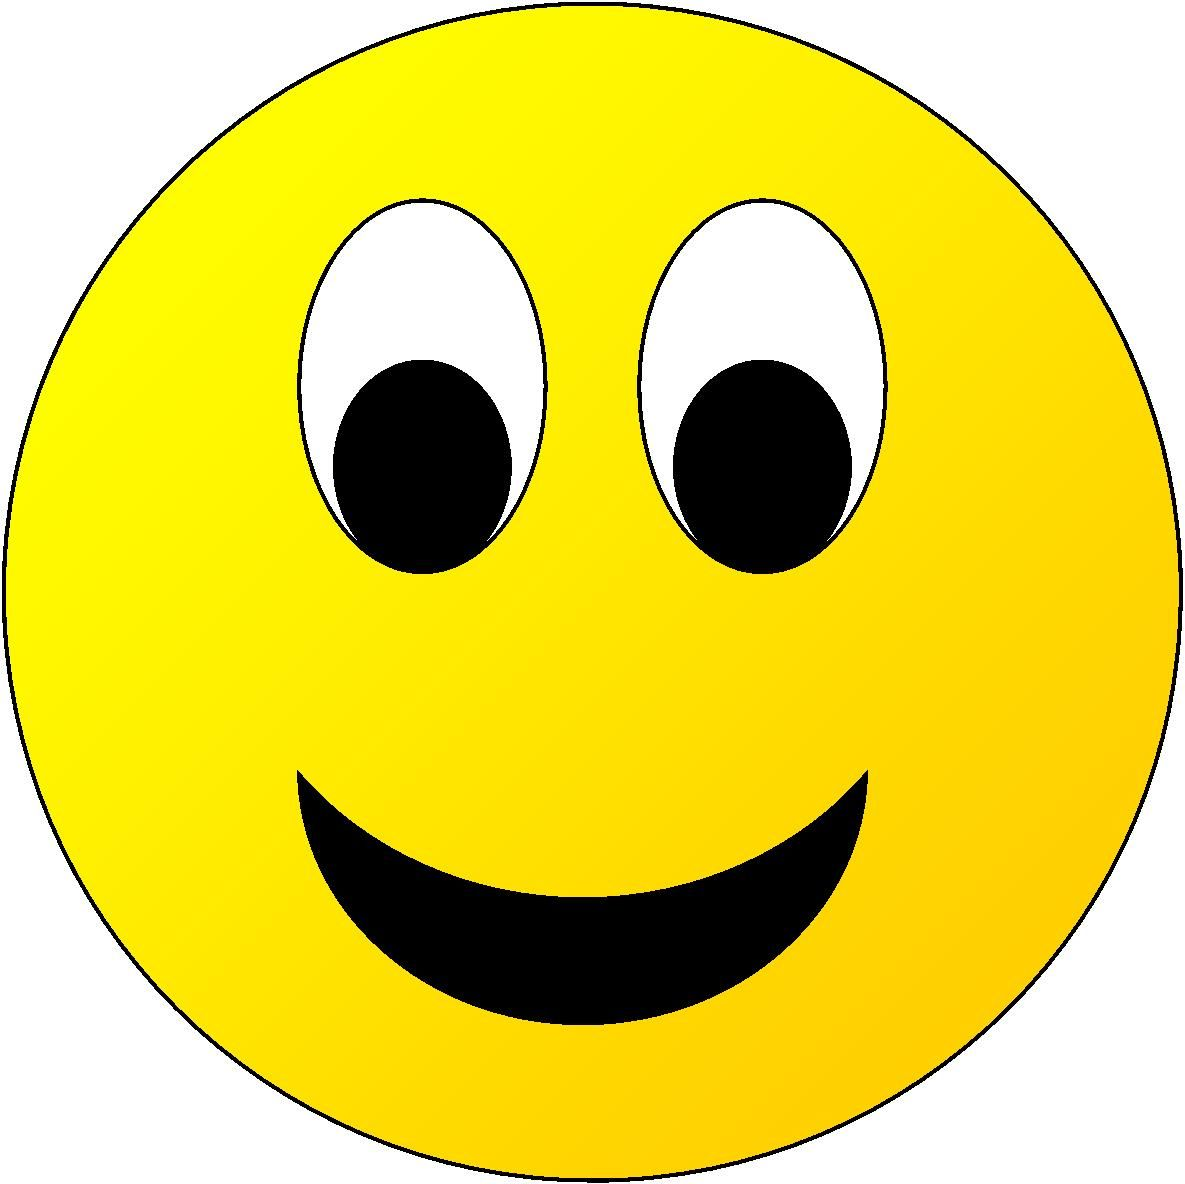 Clipart happy faces expressions clip art royalty free library Happy Face Star Clipart | Clipart Panda - Free Clipart Images ... clip art royalty free library